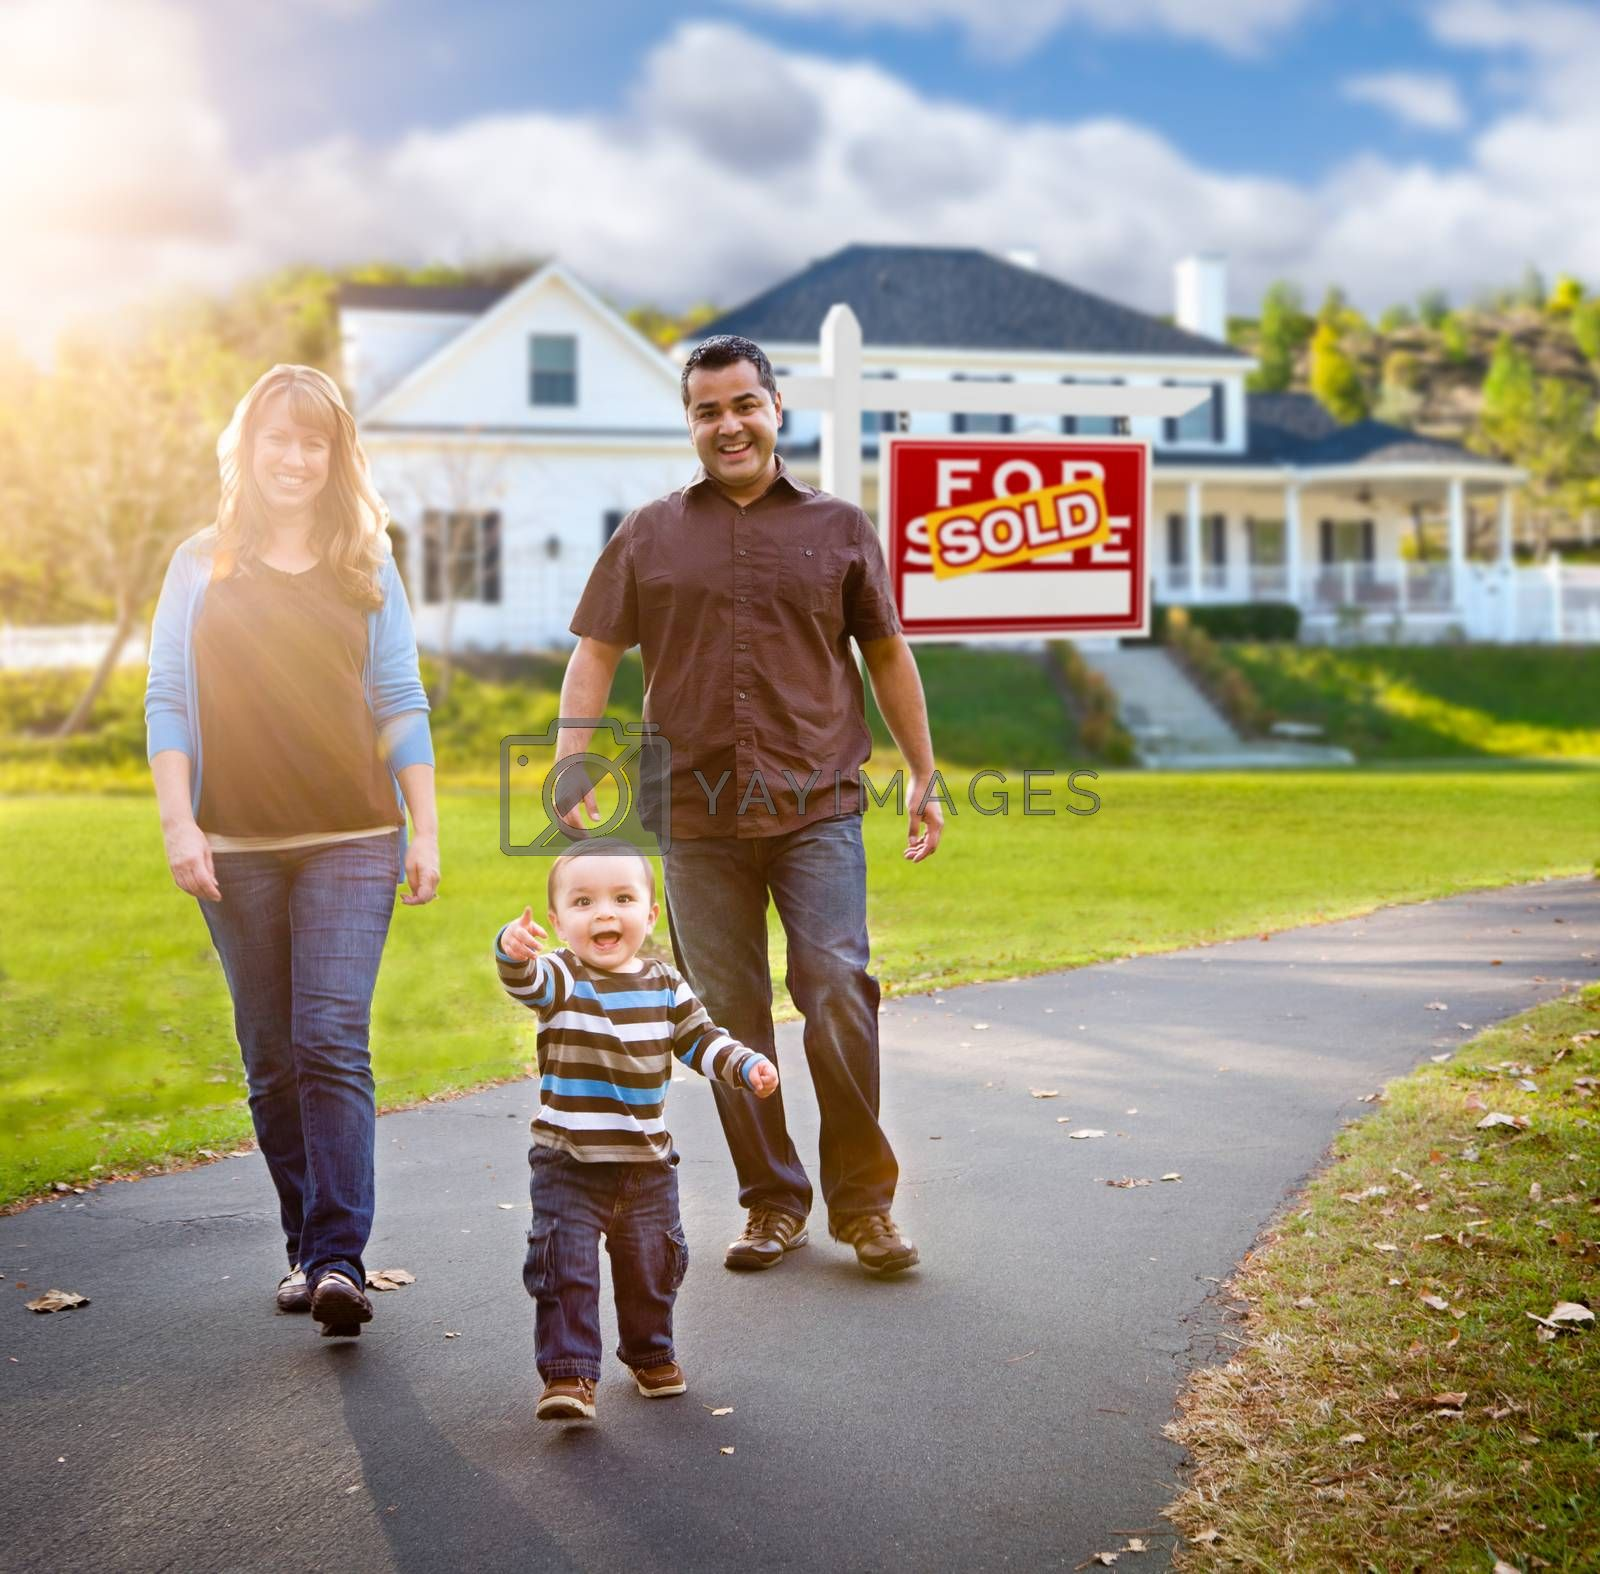 Happy Mixed Race Family Walking In Front Of Home And Sold For Sale Real Estate Sign